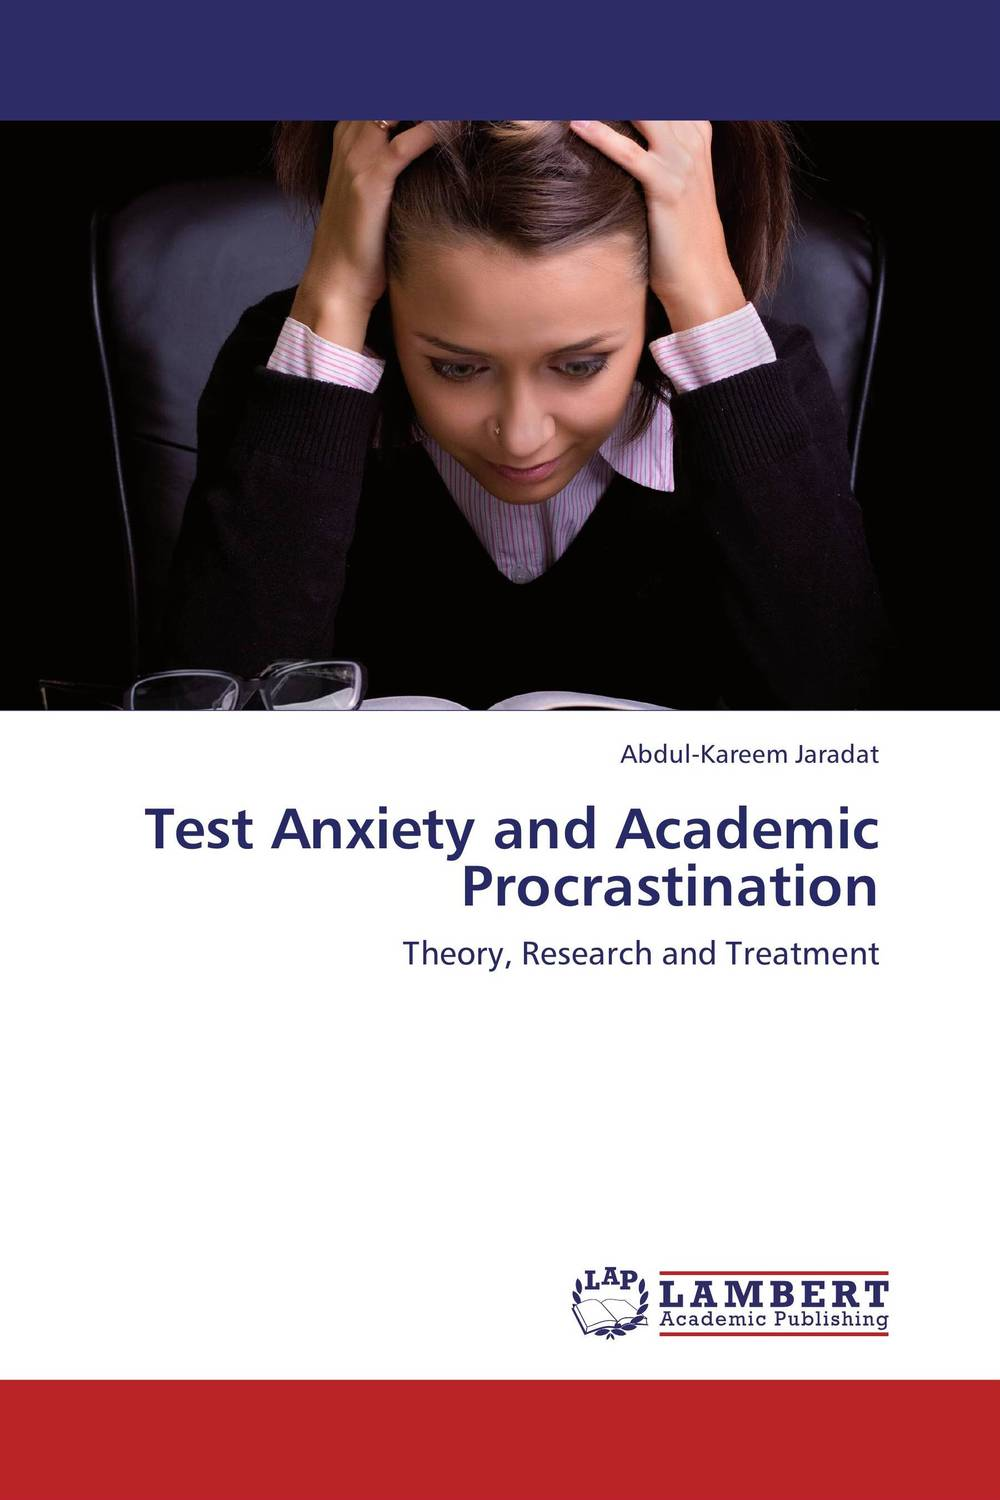 Test Anxiety and Academic Procrastination stefan hofmann g psychobiological approaches for anxiety disorders treatment combination strategies